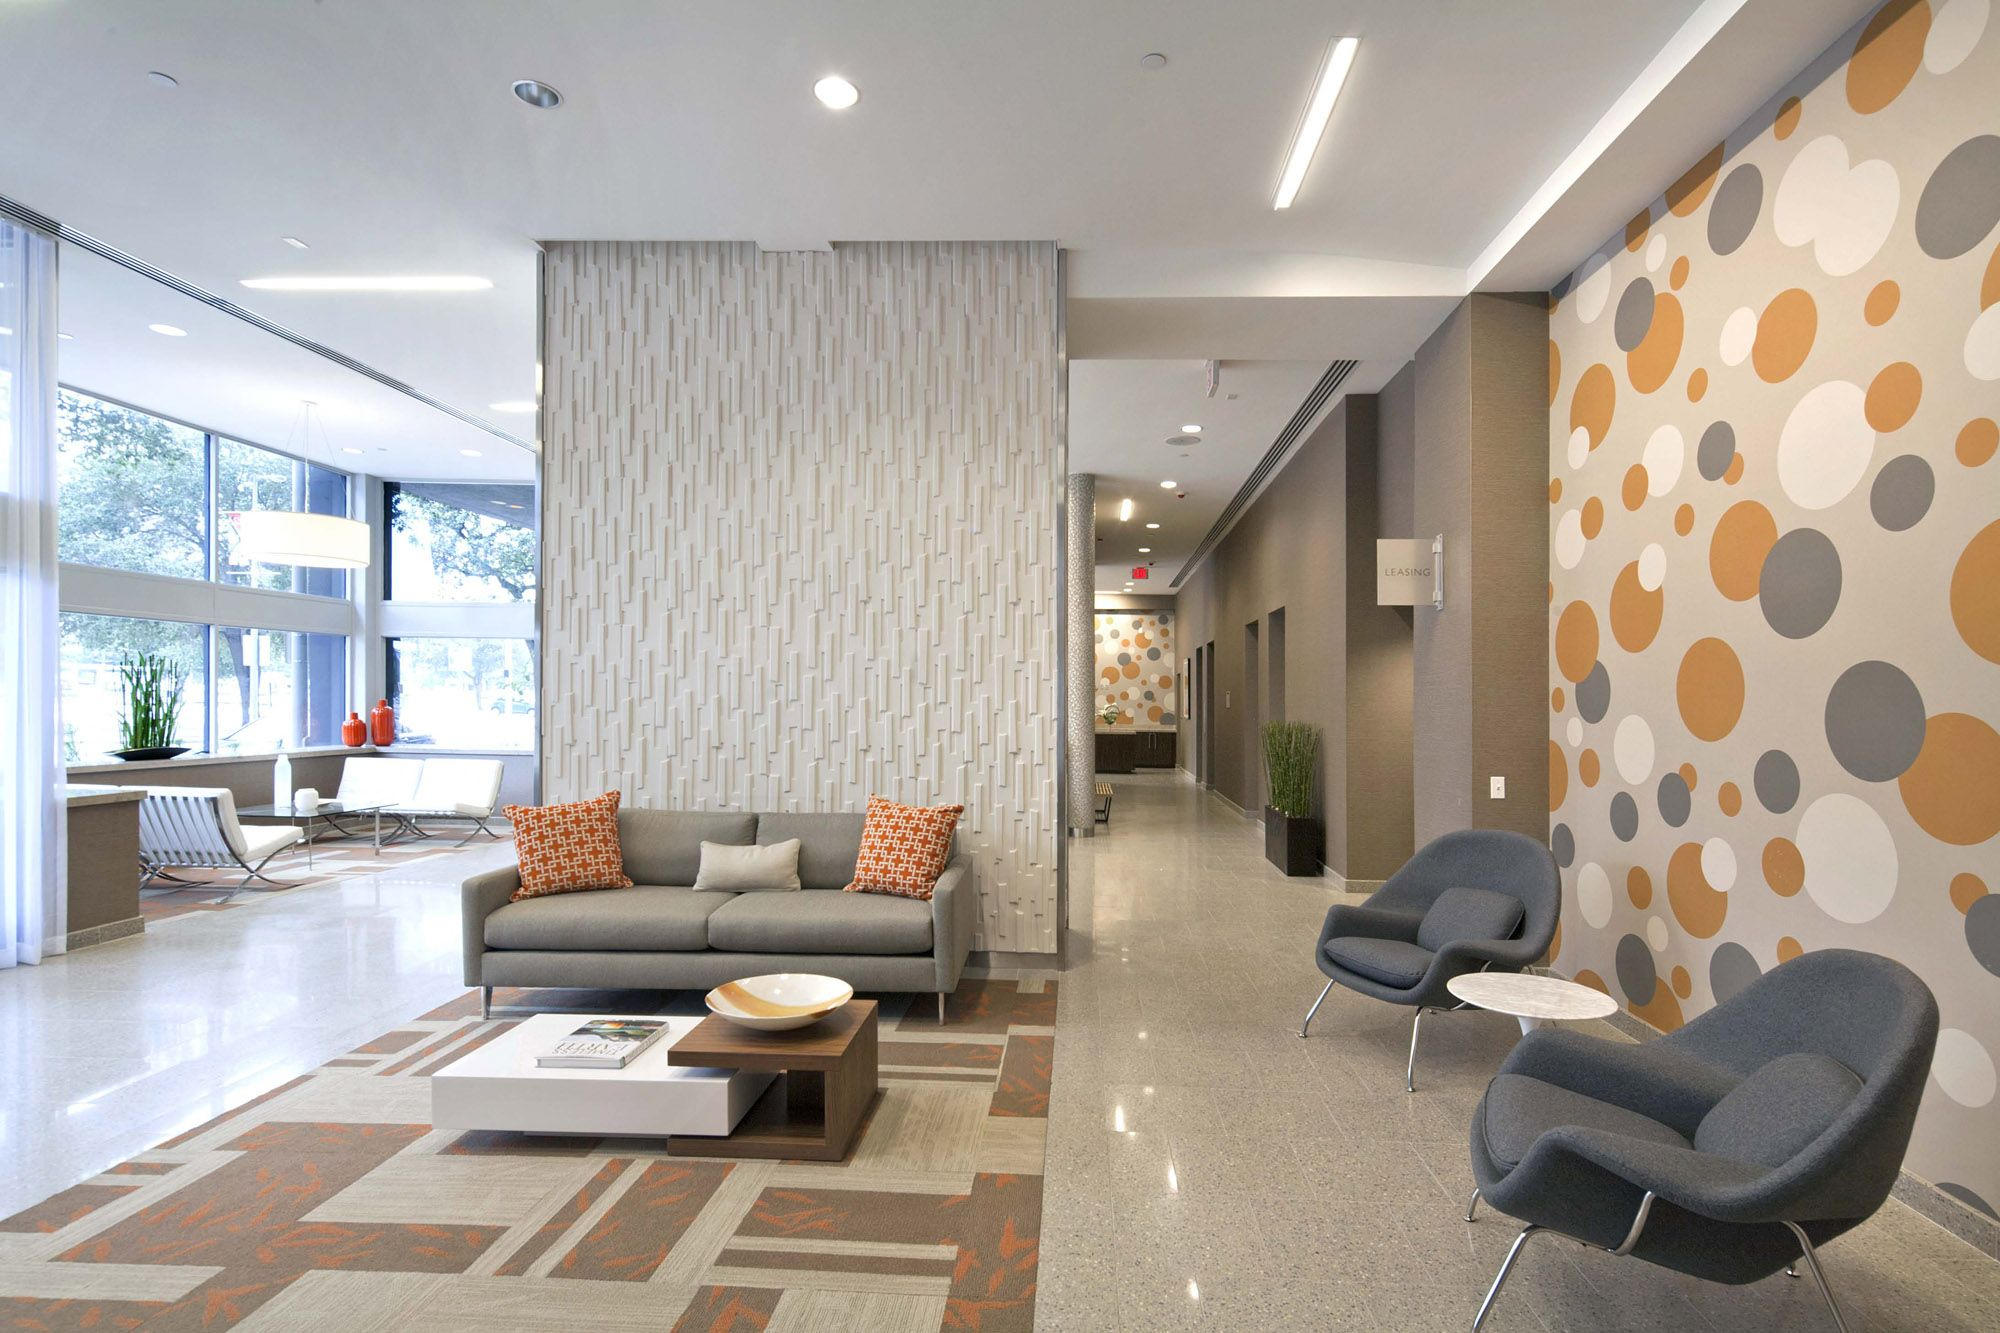 AweInspiring 3D Lobby Design to Give a WOW Factor by AAA